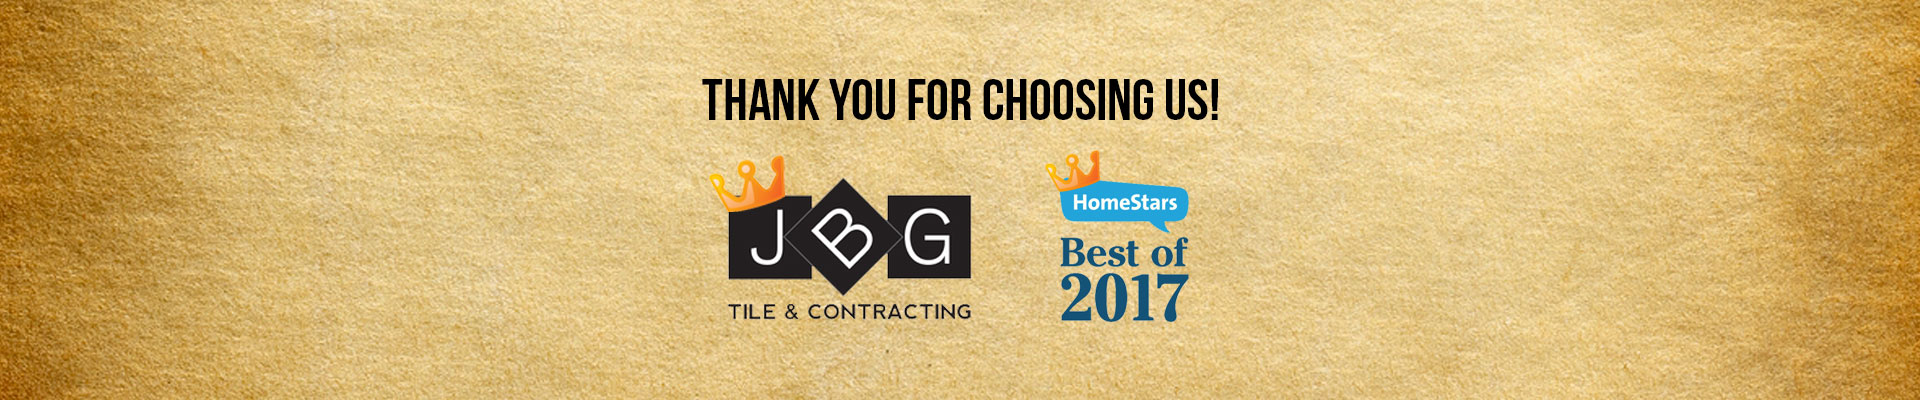 JBG 2017 HomeStars Award